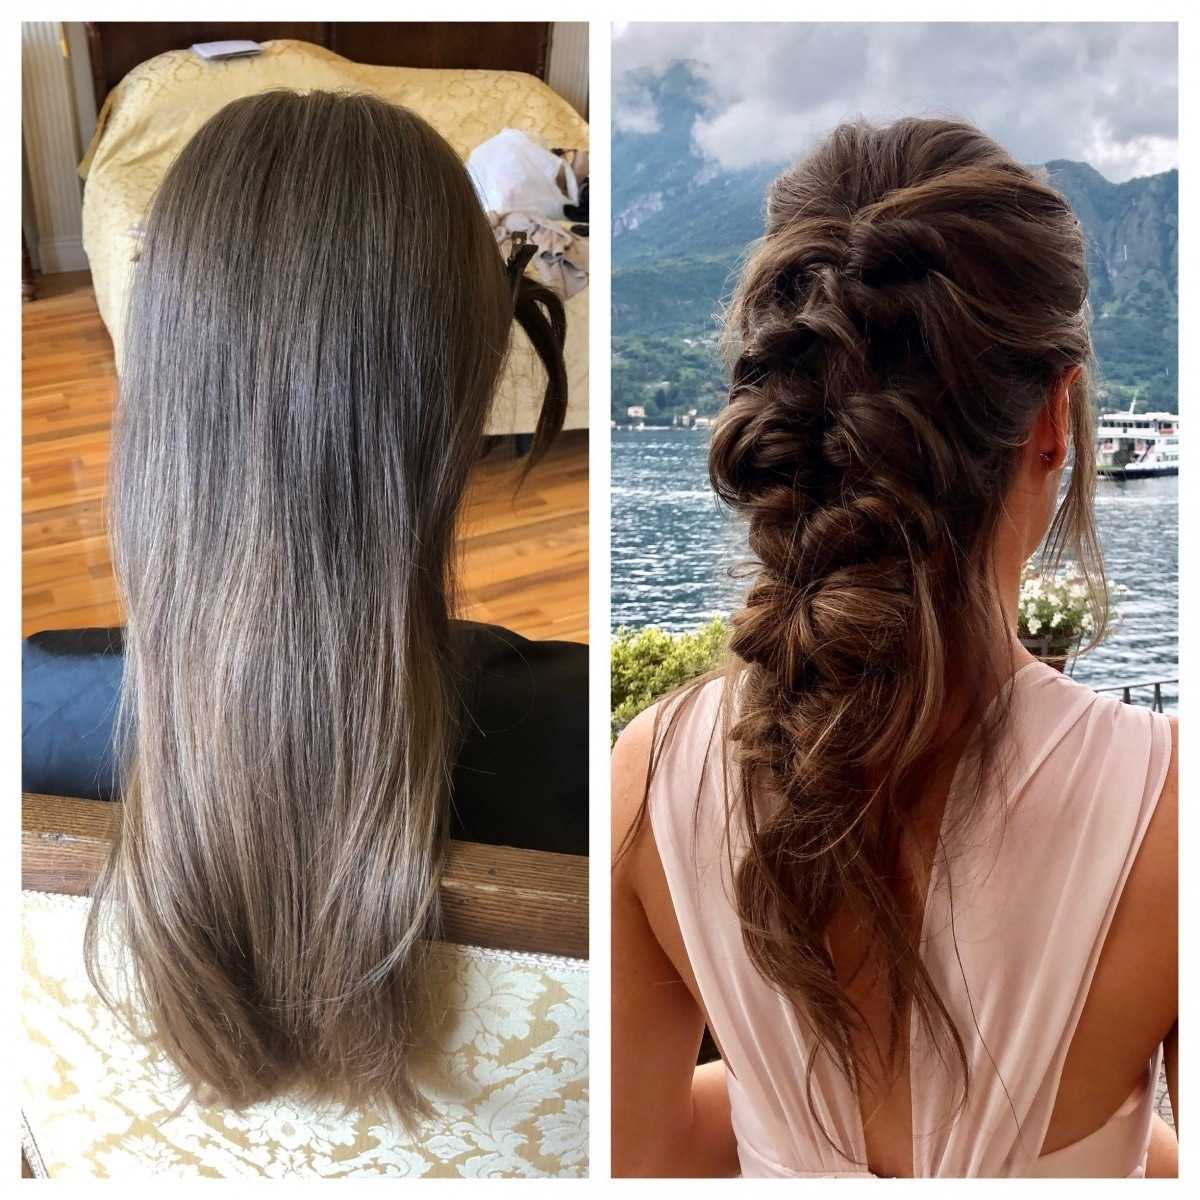 Before and After - Hair and Makeup - Gemma Sutton2